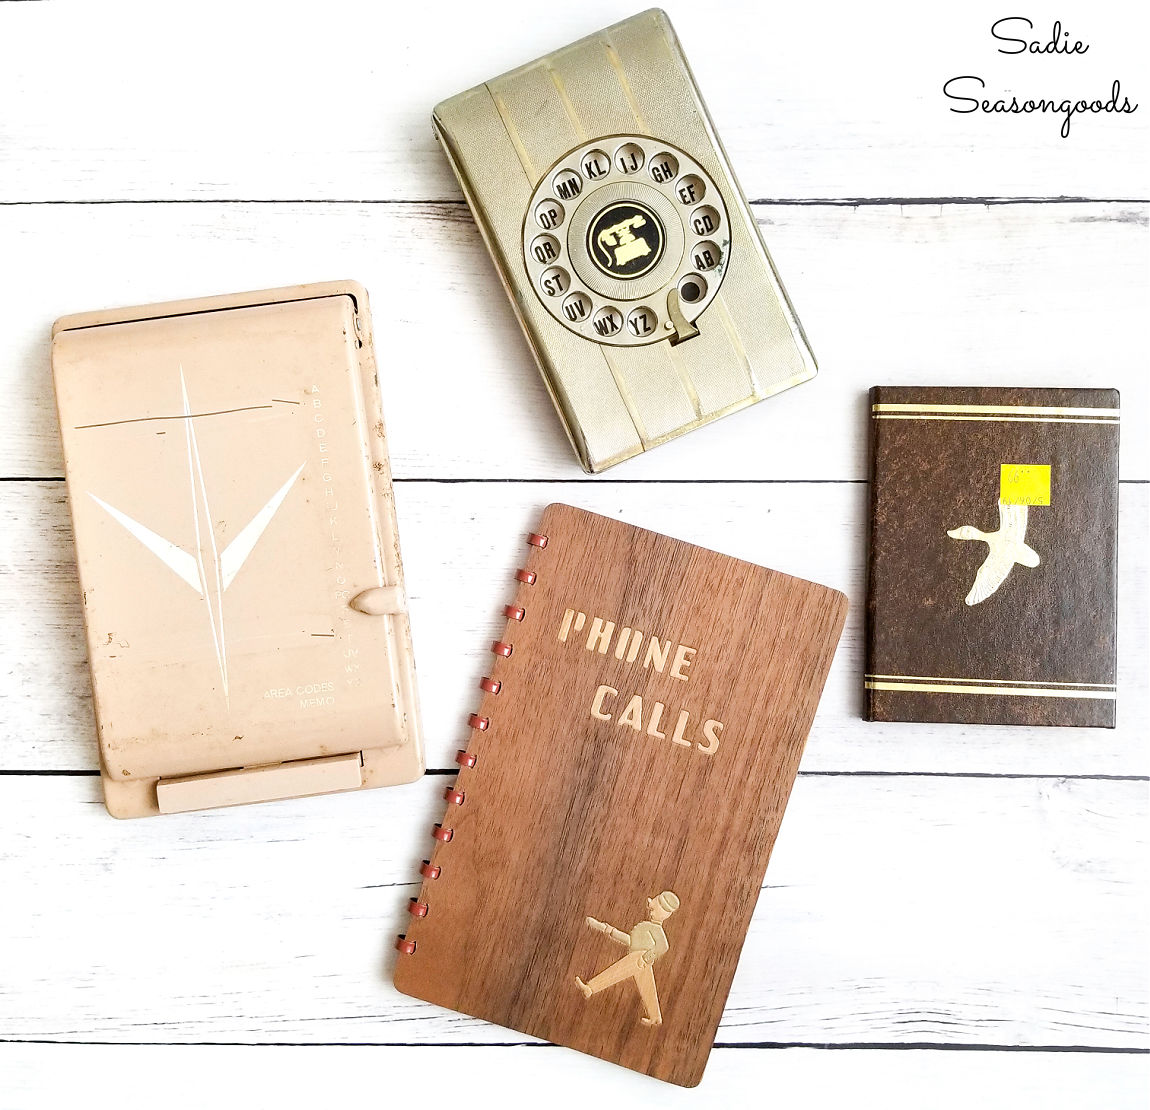 Vintage address books